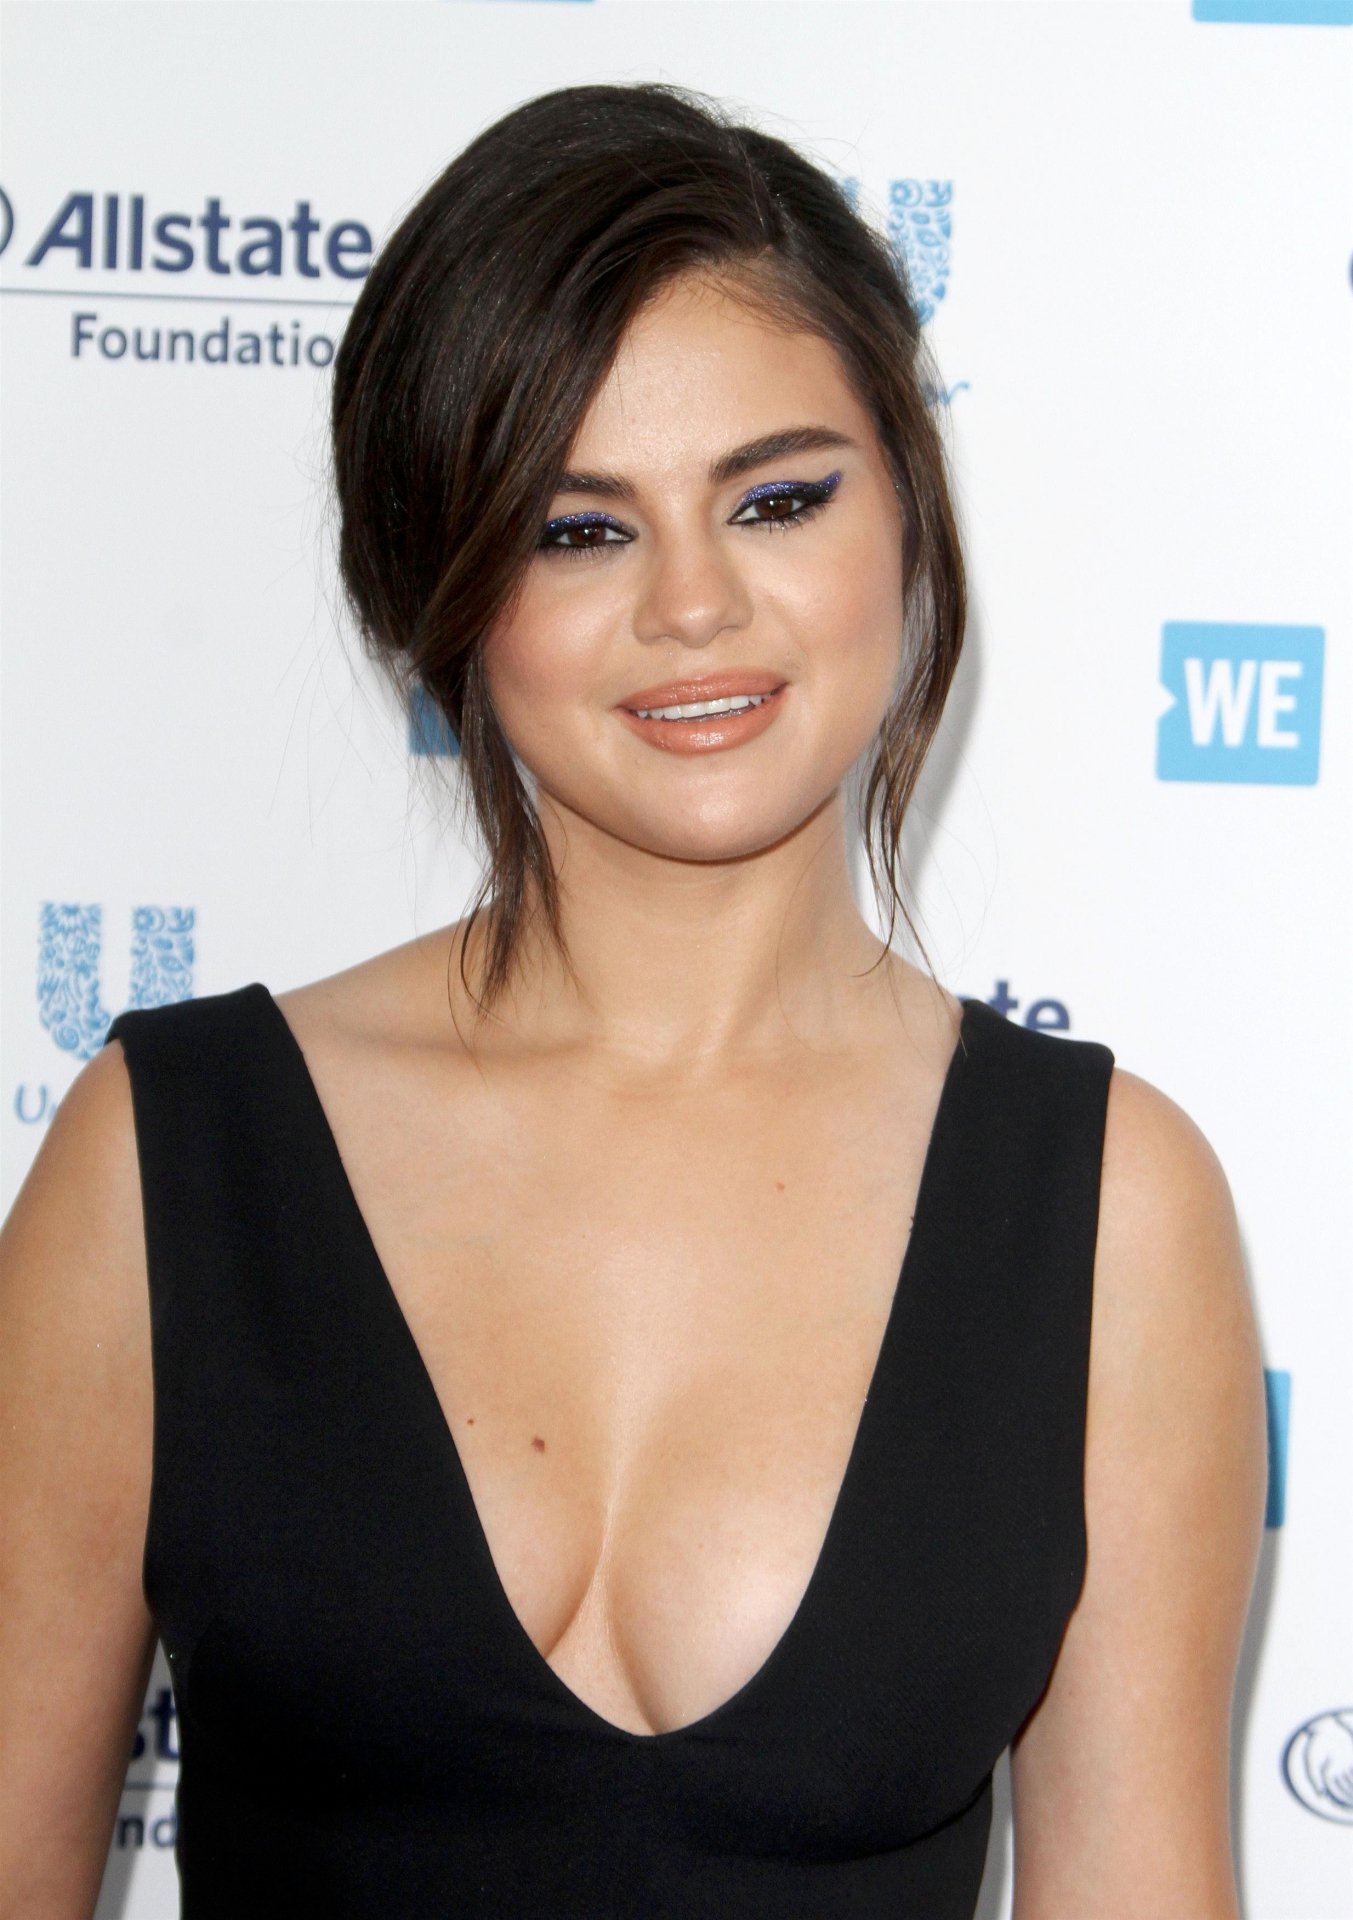 Selena Gomez - Sexy Big Cleavage at WE Day California 2019 in Inglewood - Hot Celebs Home